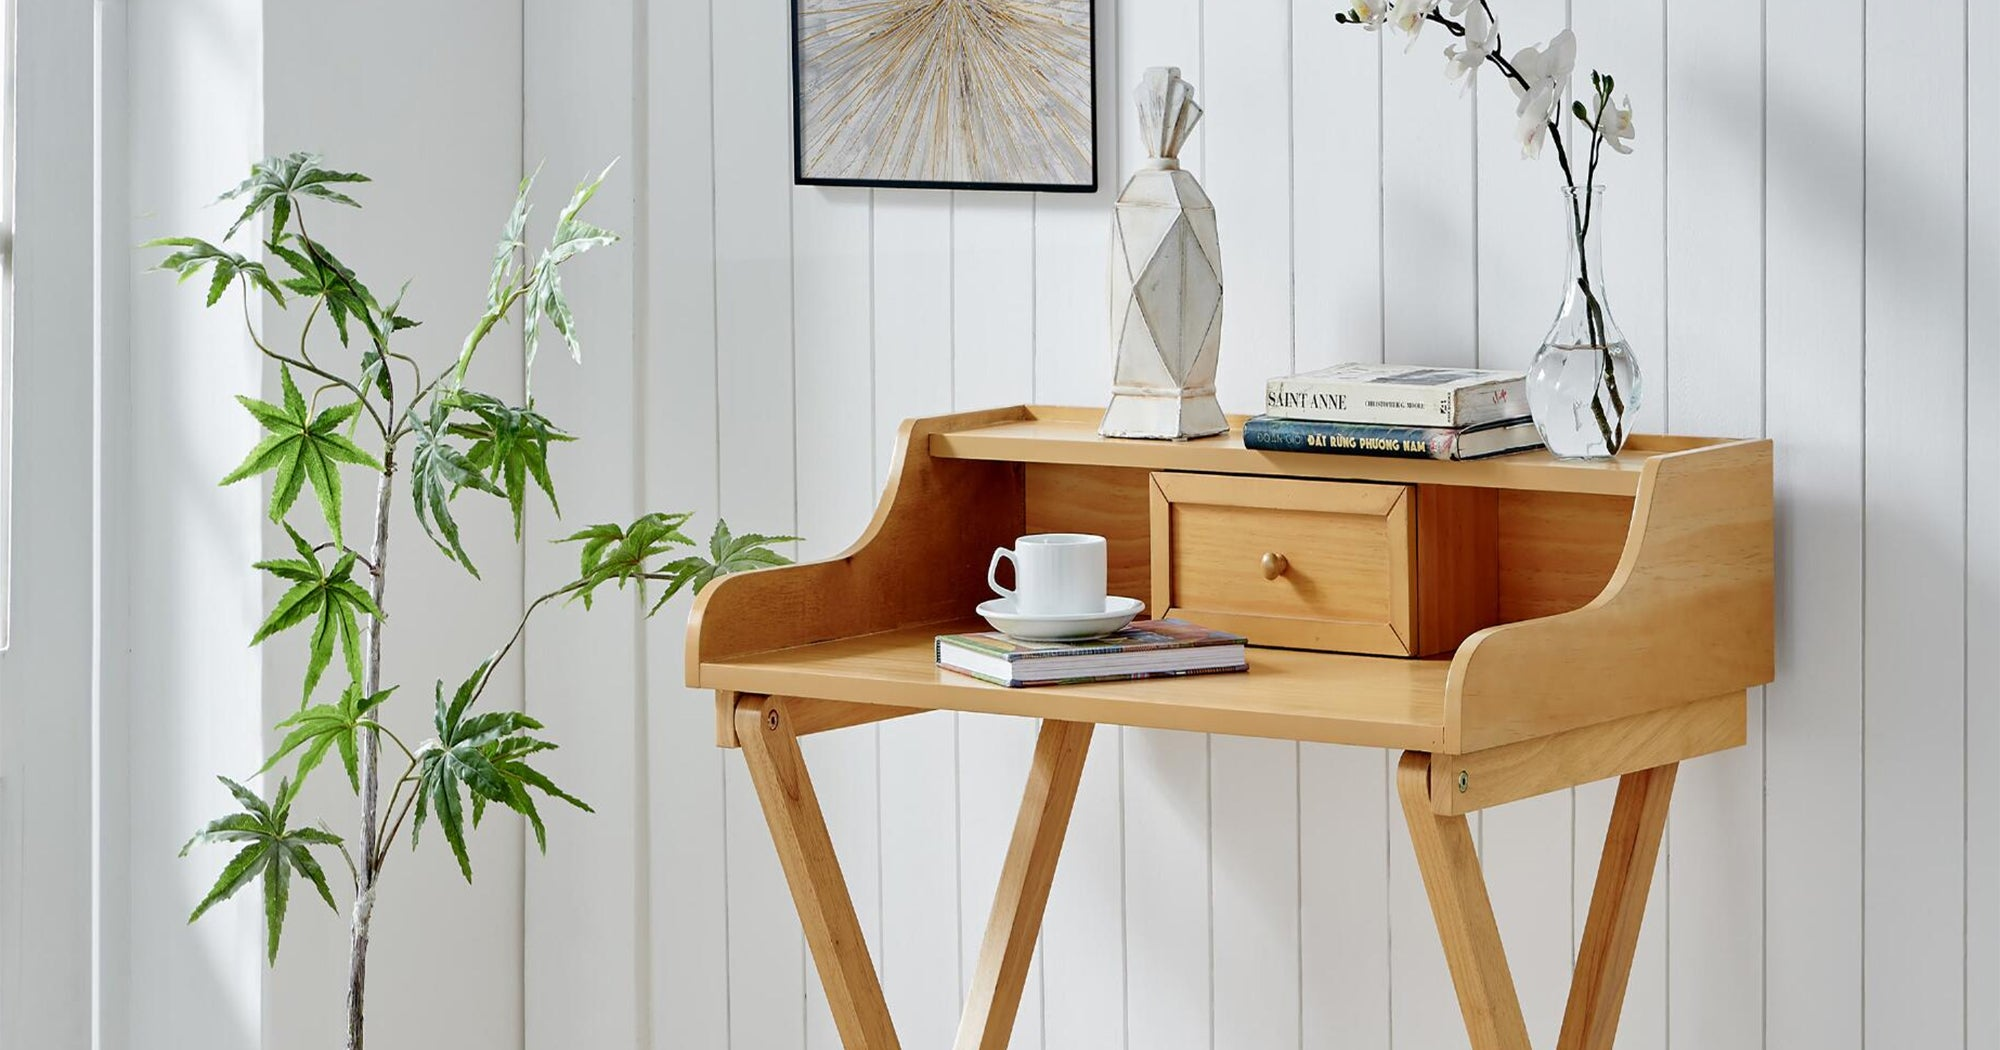 Best Folding Desks For Laptops, Small Spaces, & More